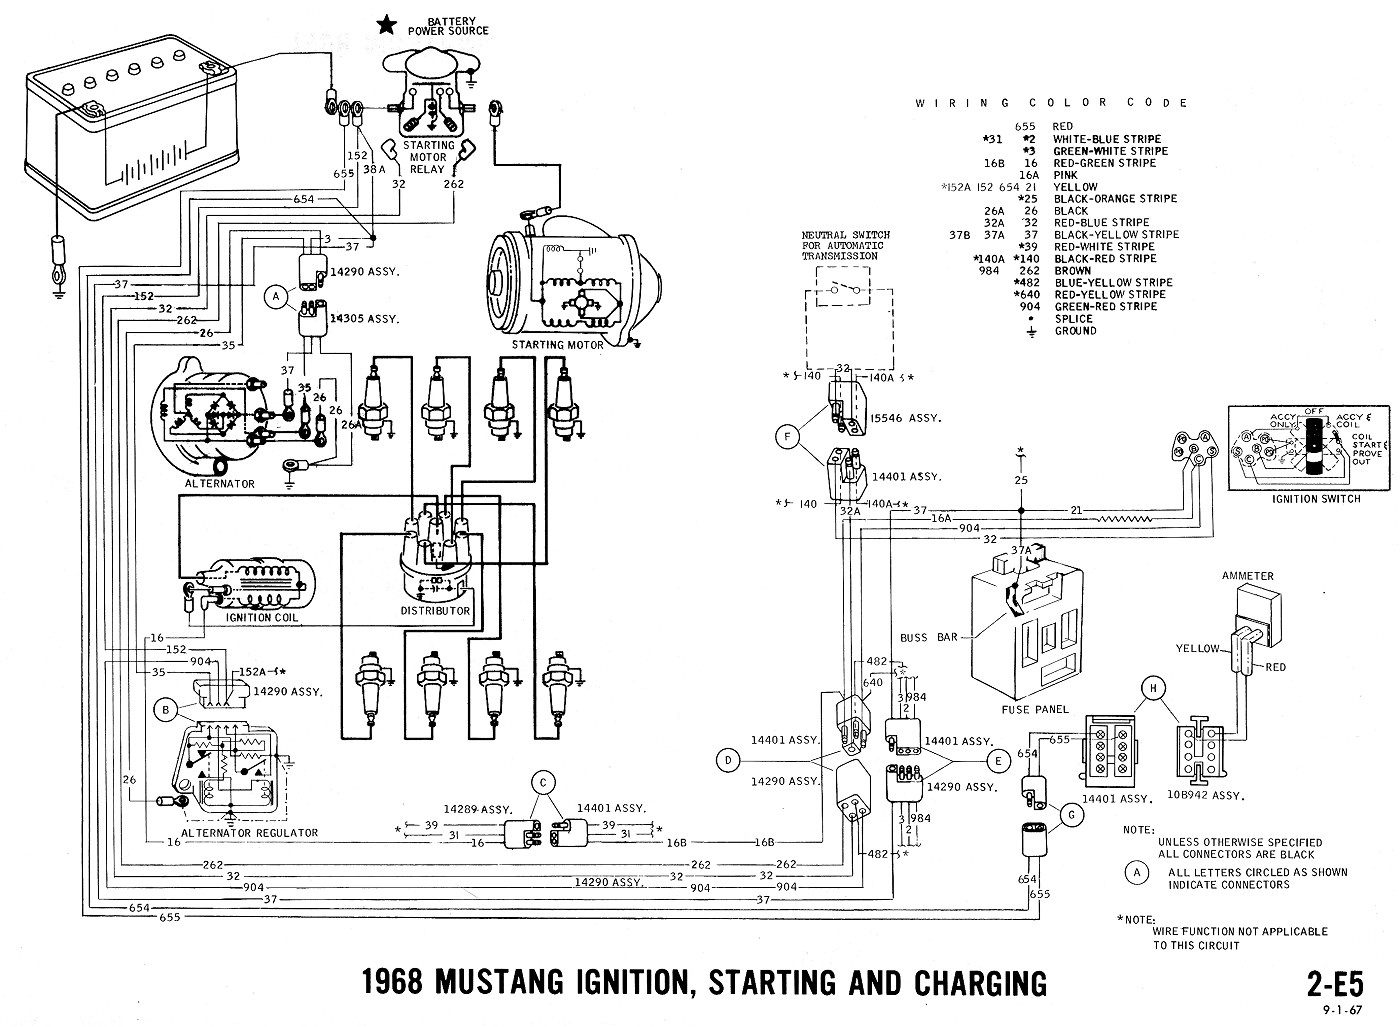 1968 Mustang Wiring Diagrams Evolving Software Electrical Diagram Charging Starting